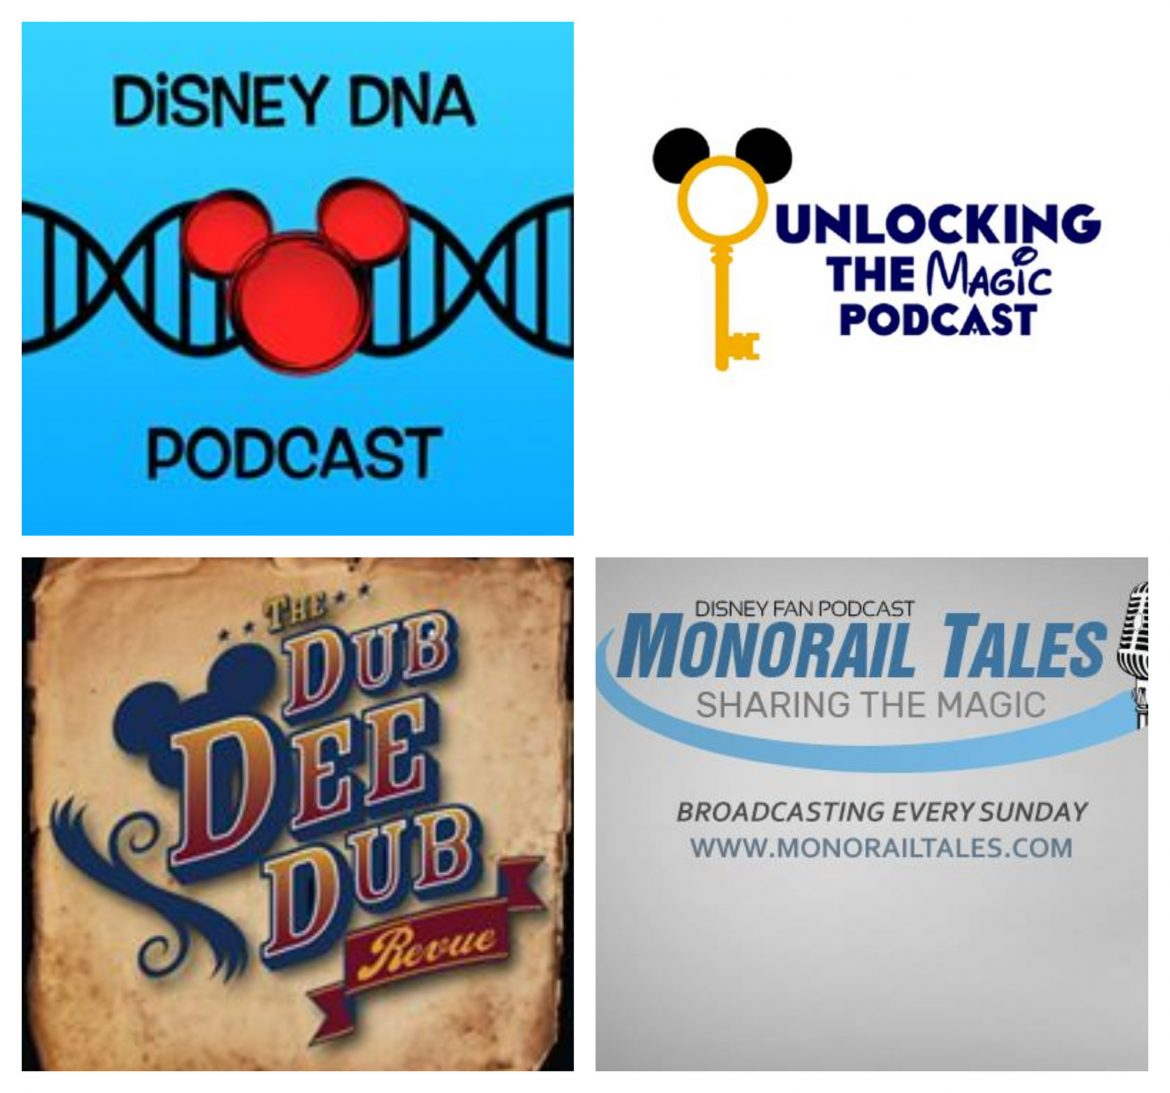 My favorite Disney podcasts!